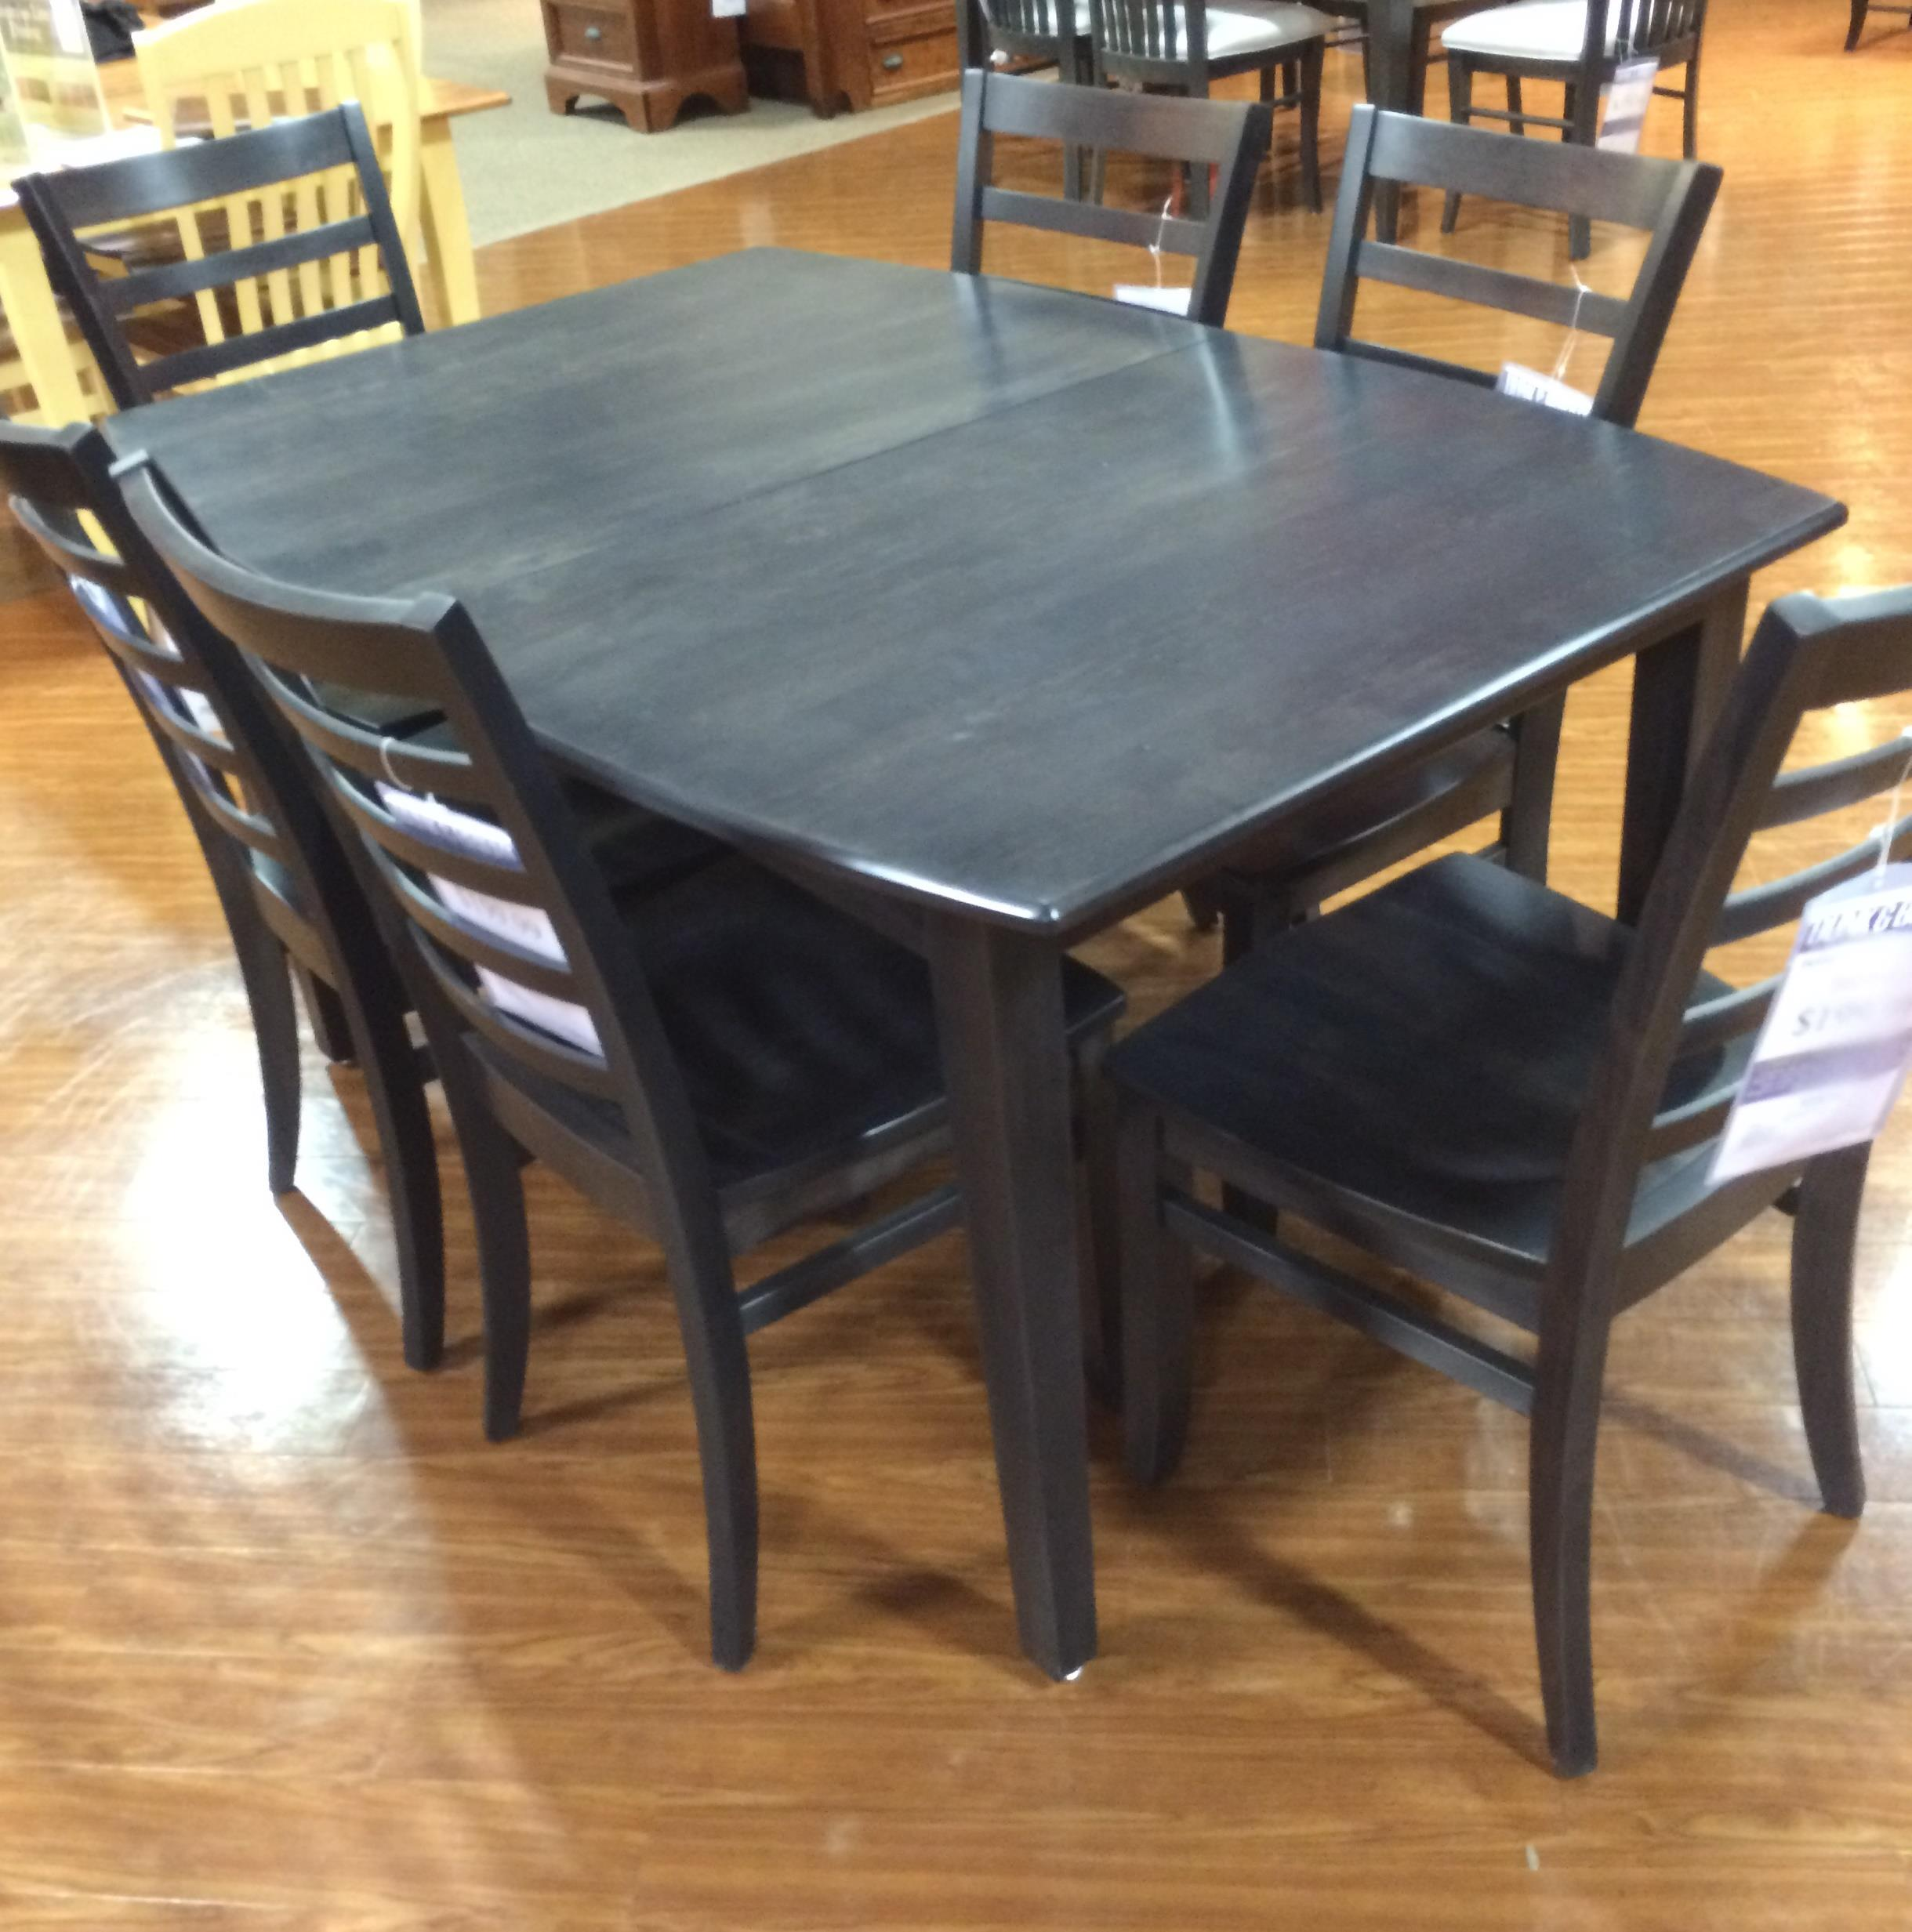 Palettes By Winesburg Charcoal Custom Boat Table   Item Number: LITE4058G1 M